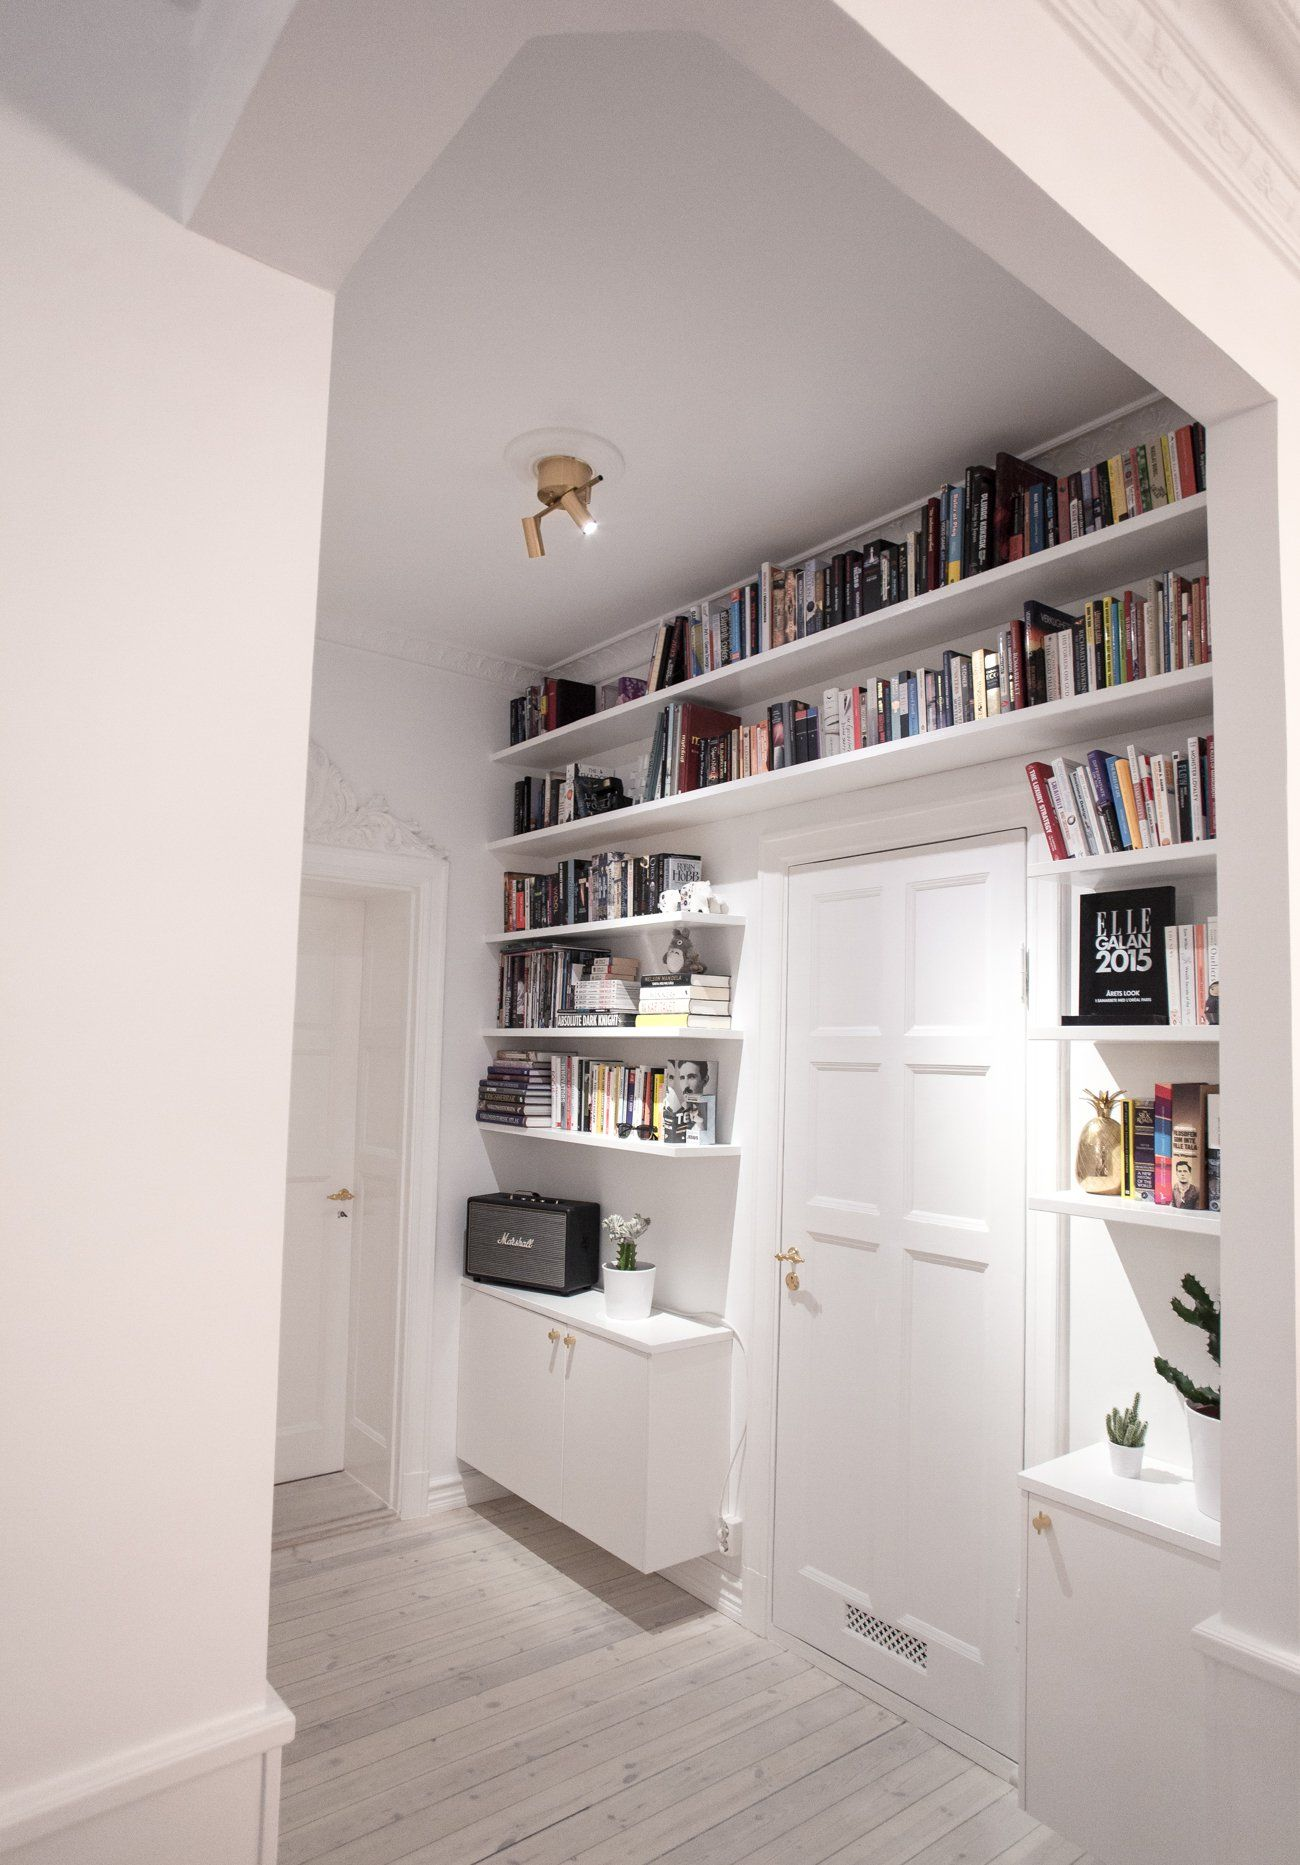 Space saving storage. Love how this keeps the floor level tidy and draws your view upwards. This could work in a small study or shields bedroom also! #compactliving